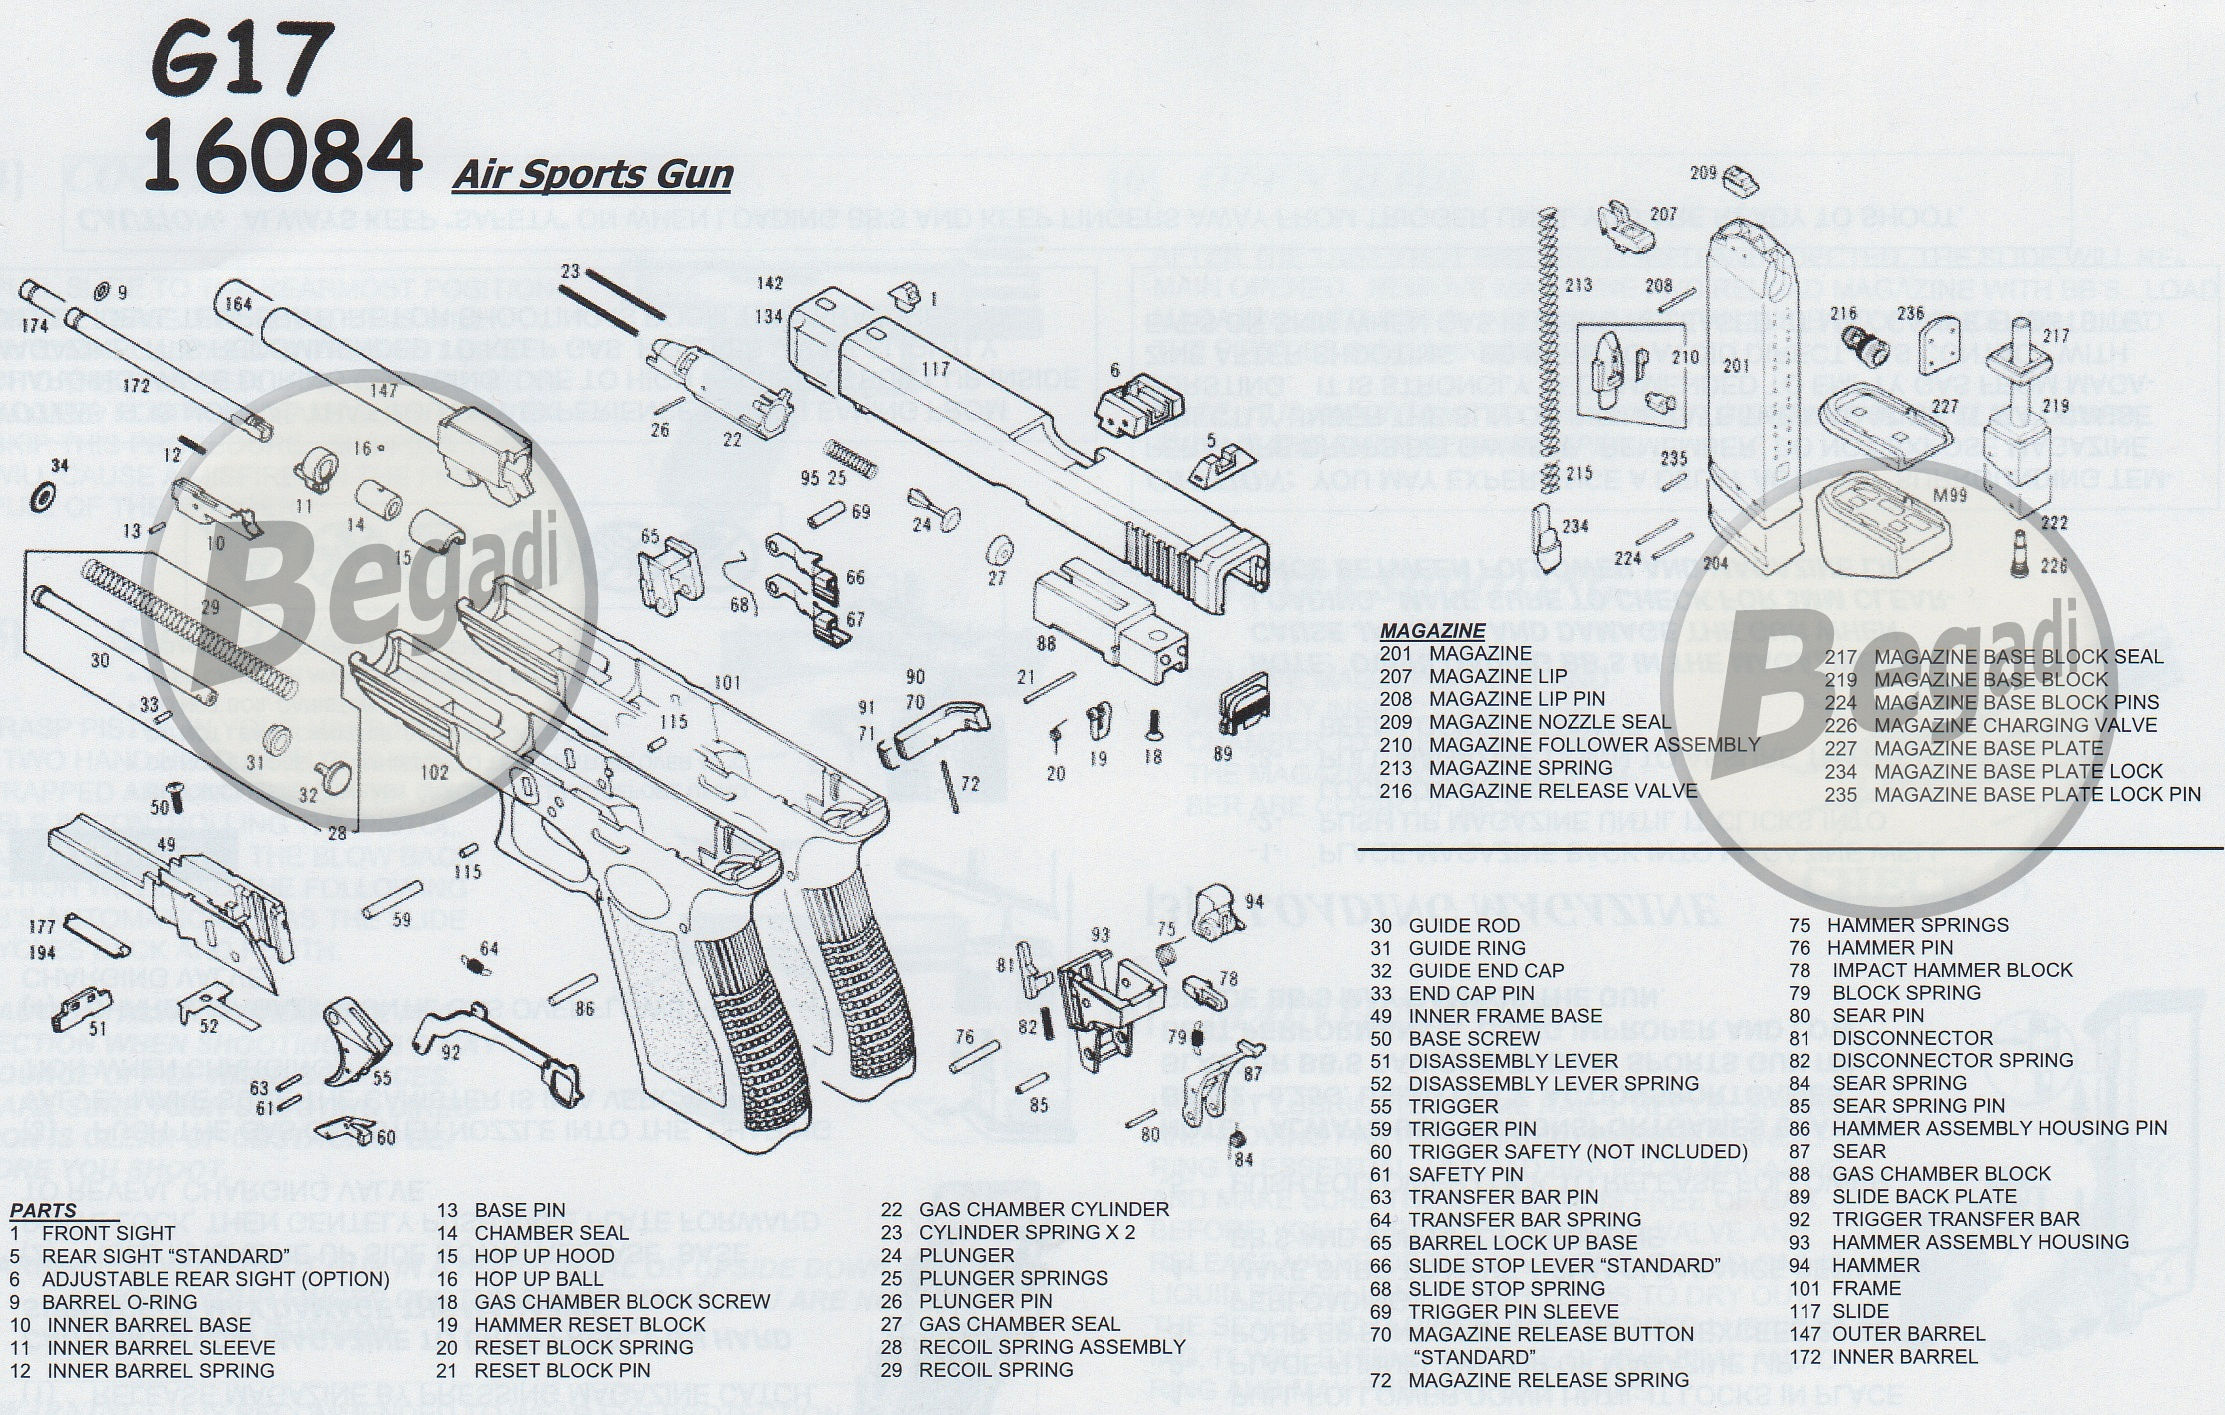 Kwa G 17 Part No 226 Bsp Kwa G17 6 Einfullventil